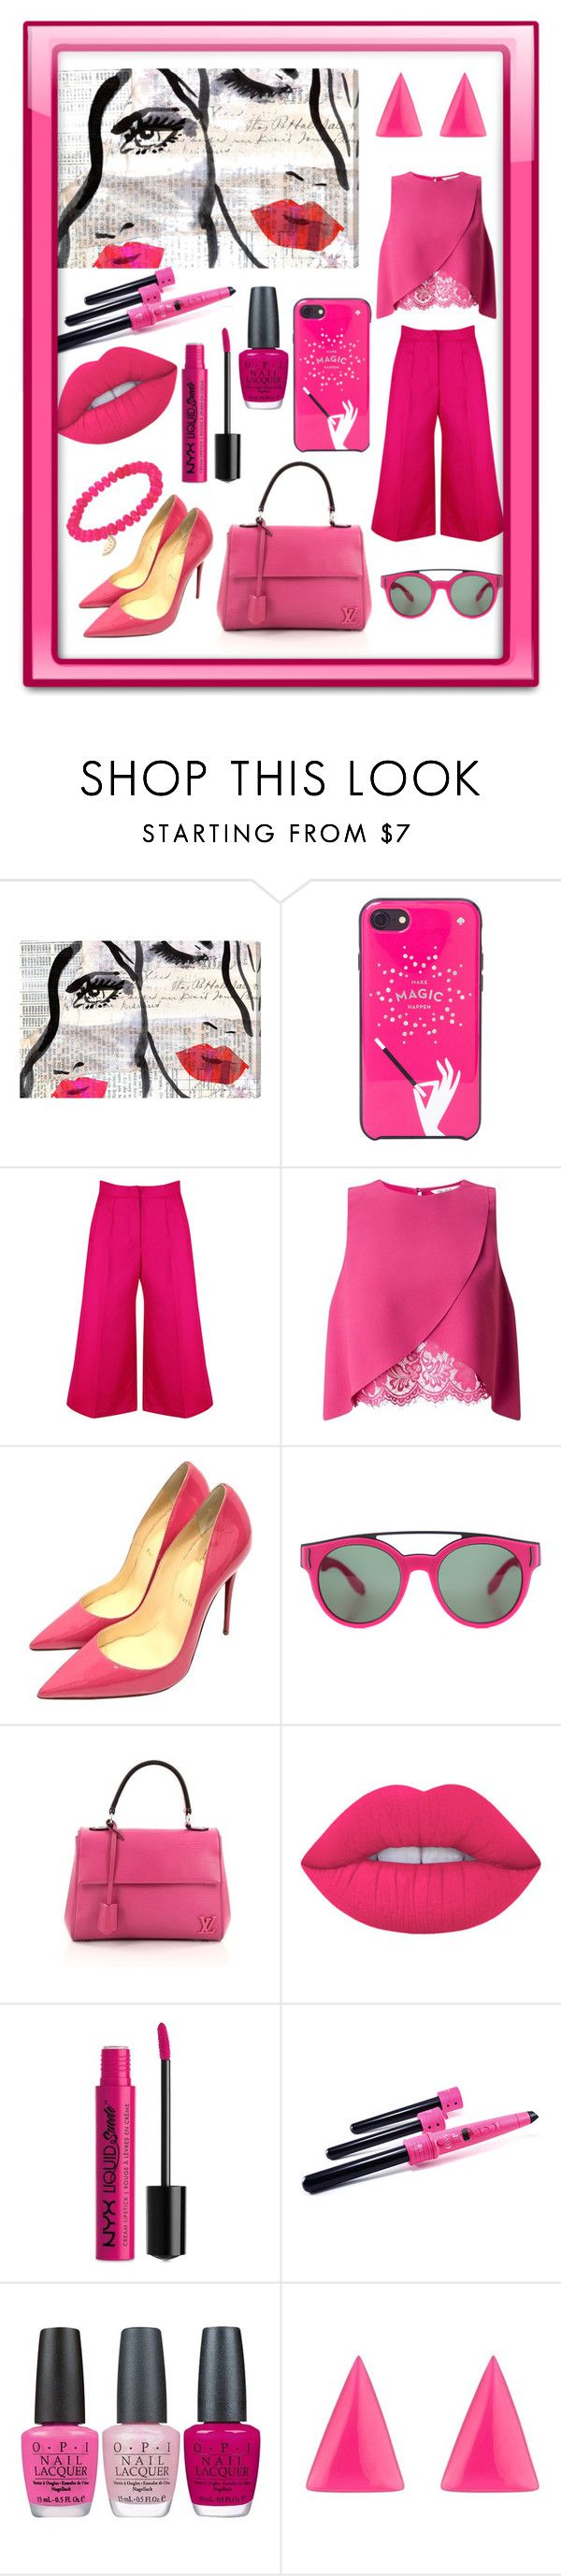 """Wearable Art"" by mandimwpink ❤ liked on Polyvore featuring Oliver Gal Artist Co., Kate Spade, Miss Selfridge, Christian Louboutin, Givenchy, Louis Vuitton, Lime Crime, NYX, Envy and OPI"